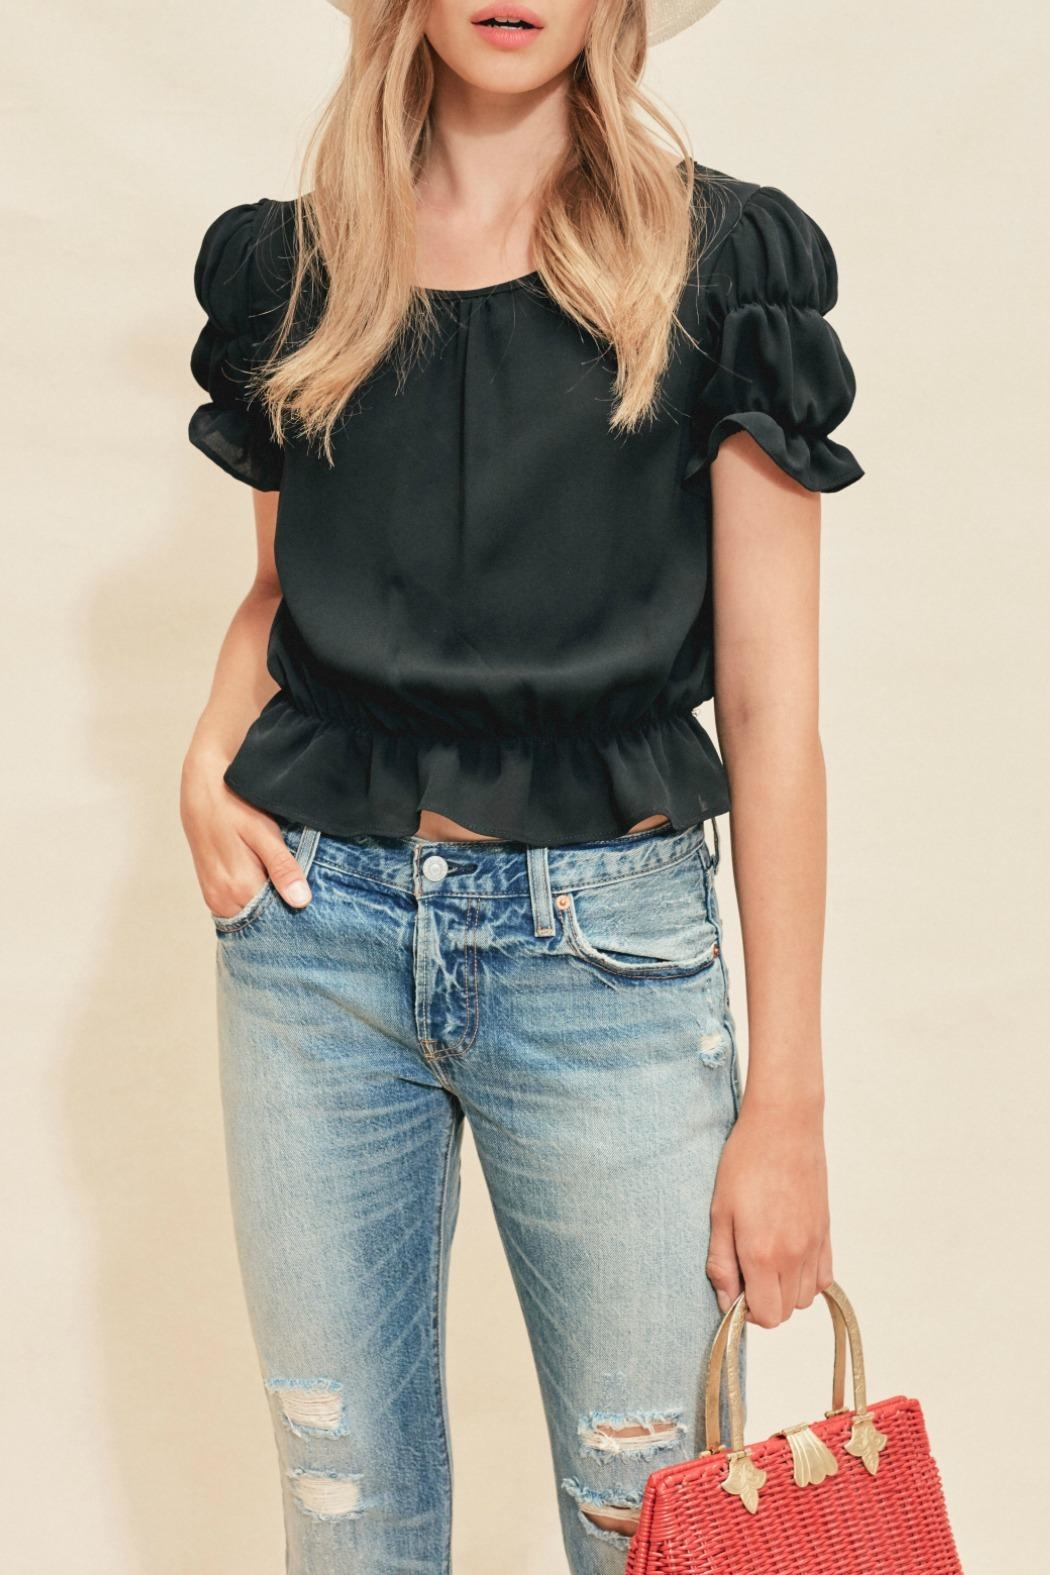 FOR LOVE & LEMONS Cropped Ruffle Top - Main Image